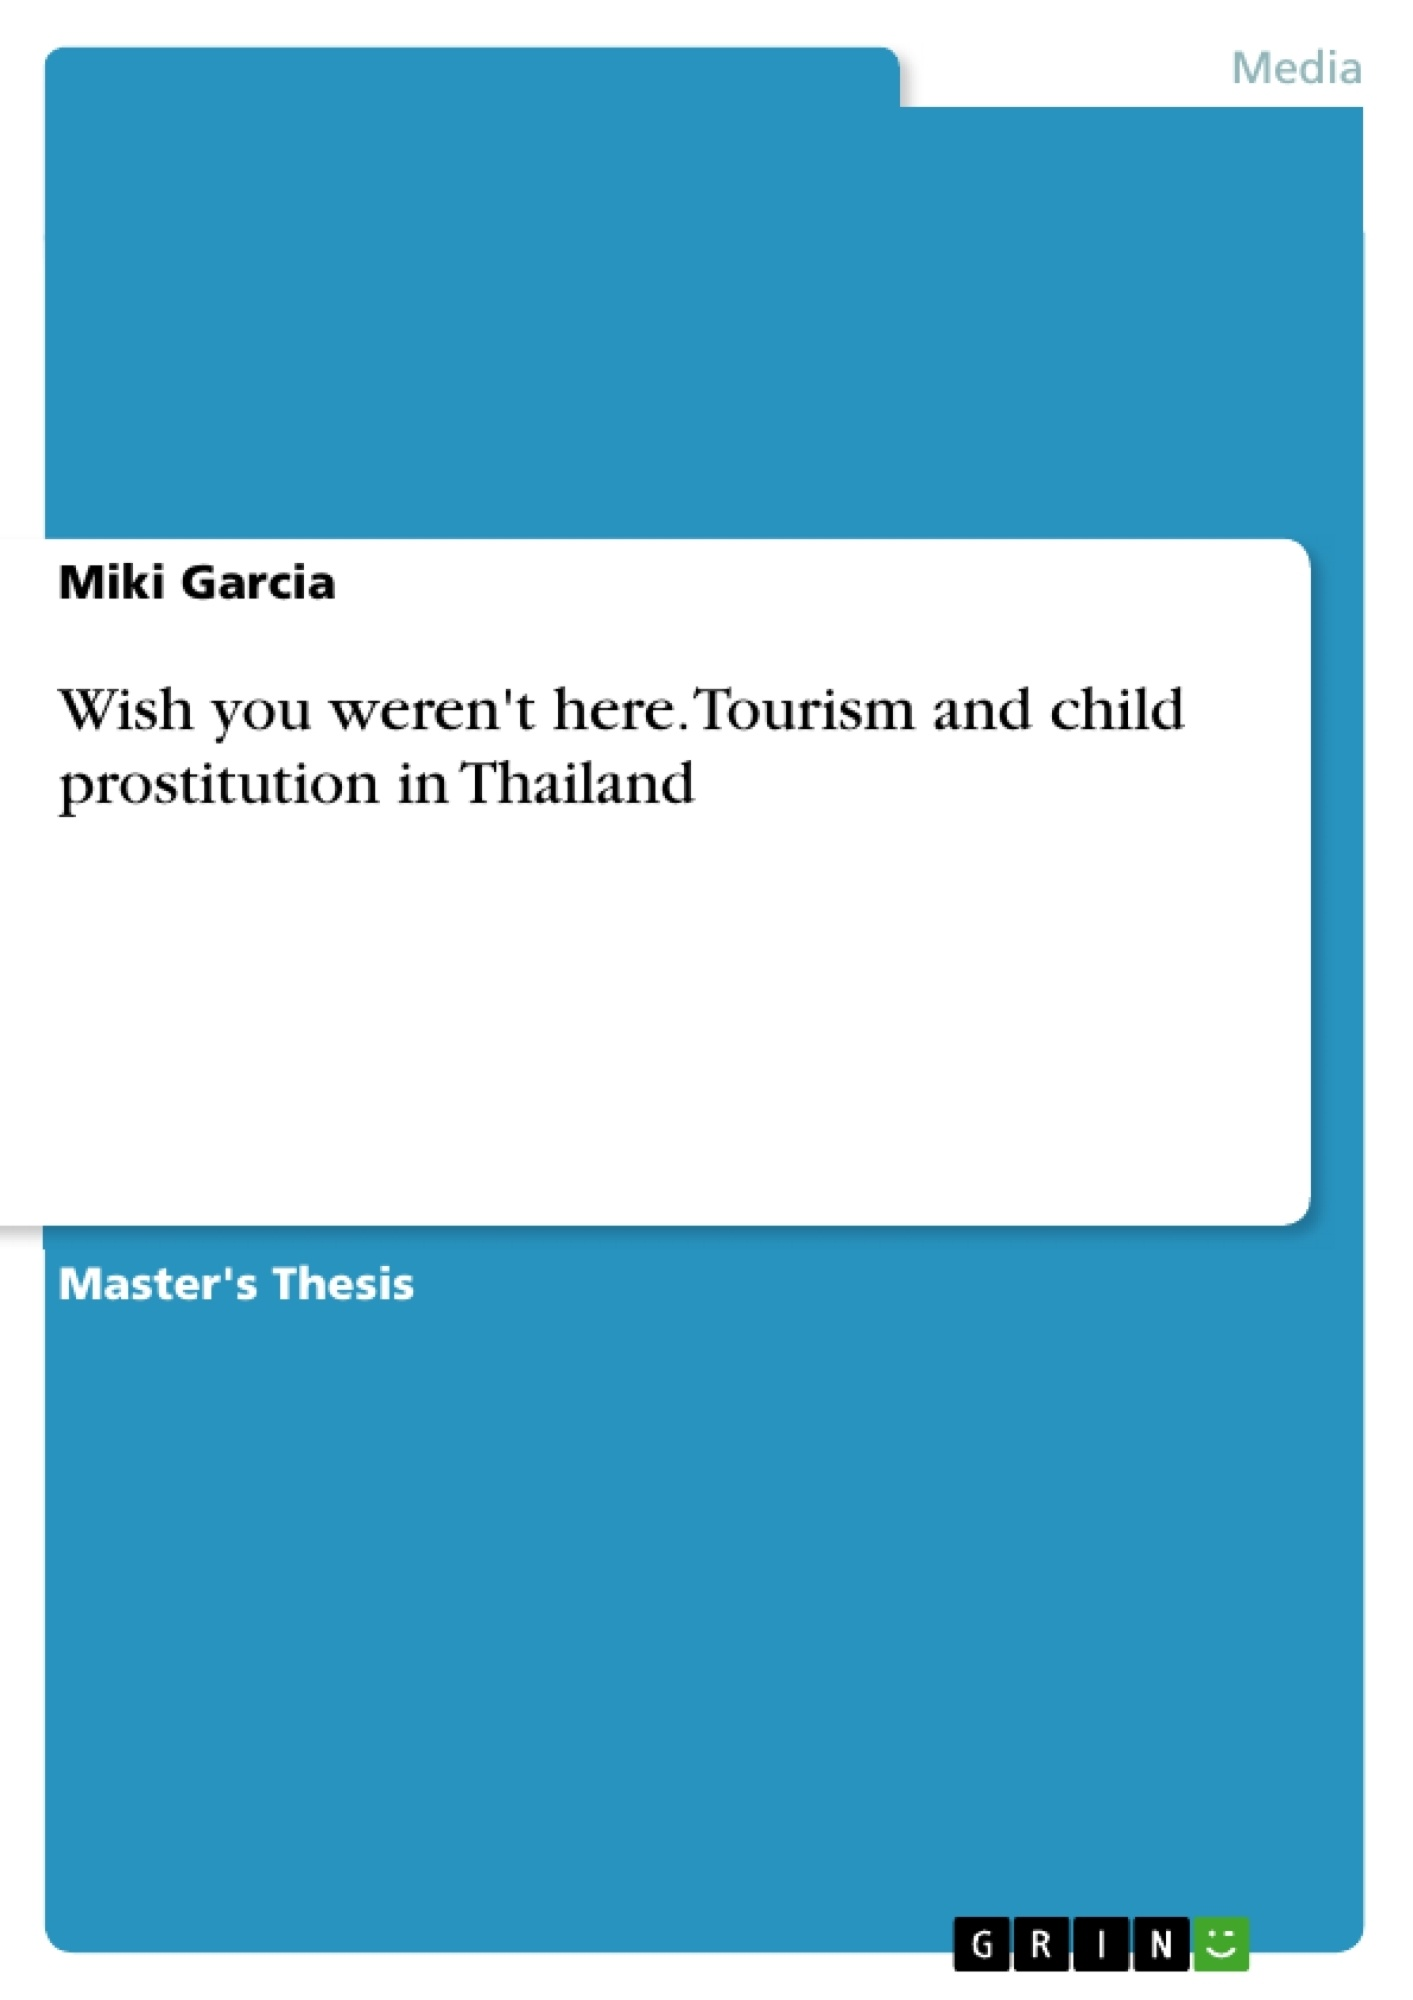 Title: Wish you weren't here. Tourism and child prostitution in Thailand